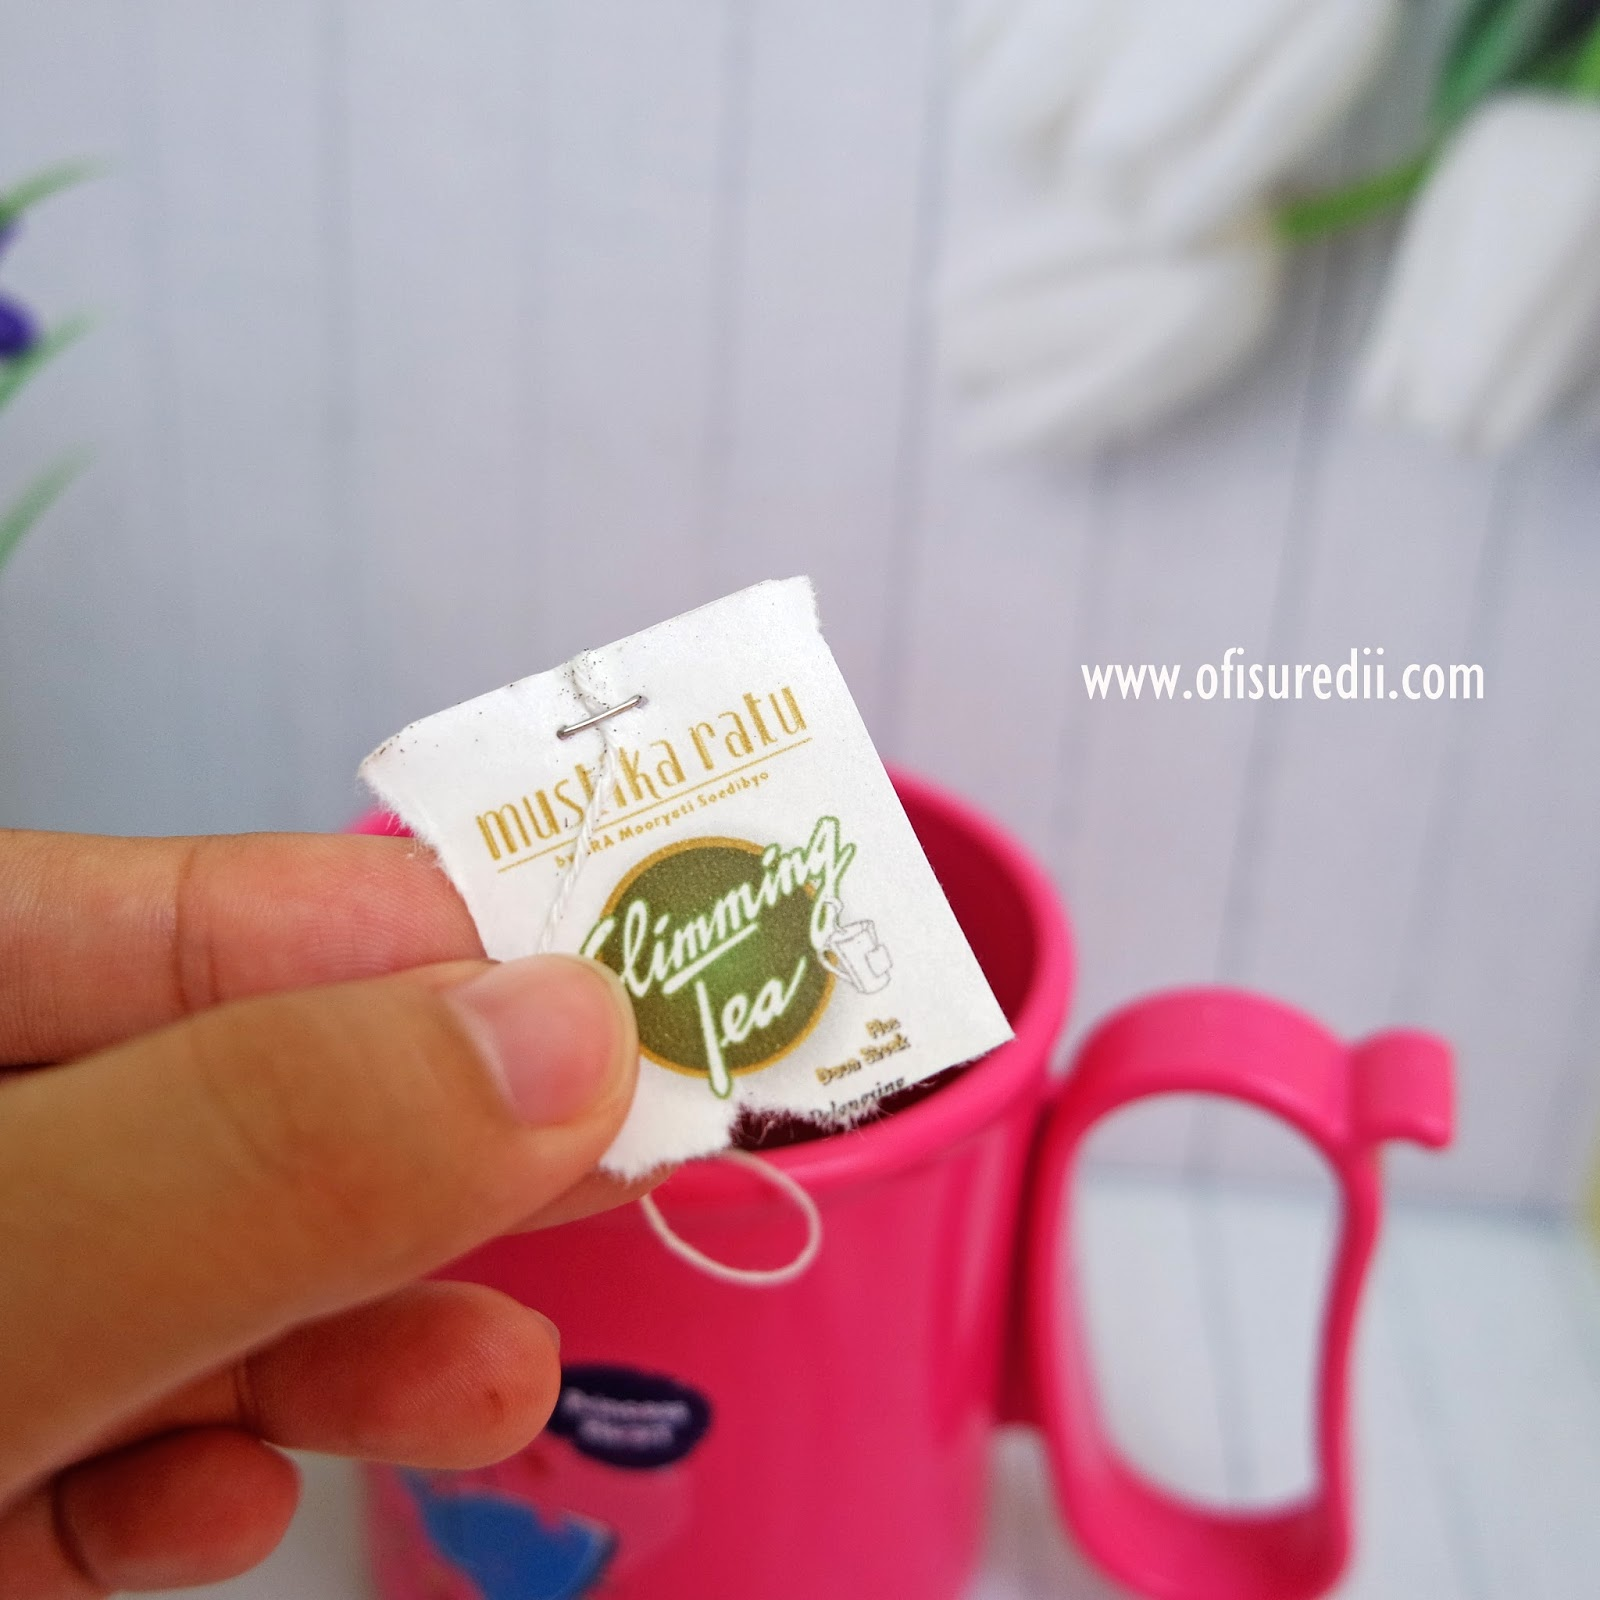 Review Slimming Tea Mustika Ratu - ofisu redii